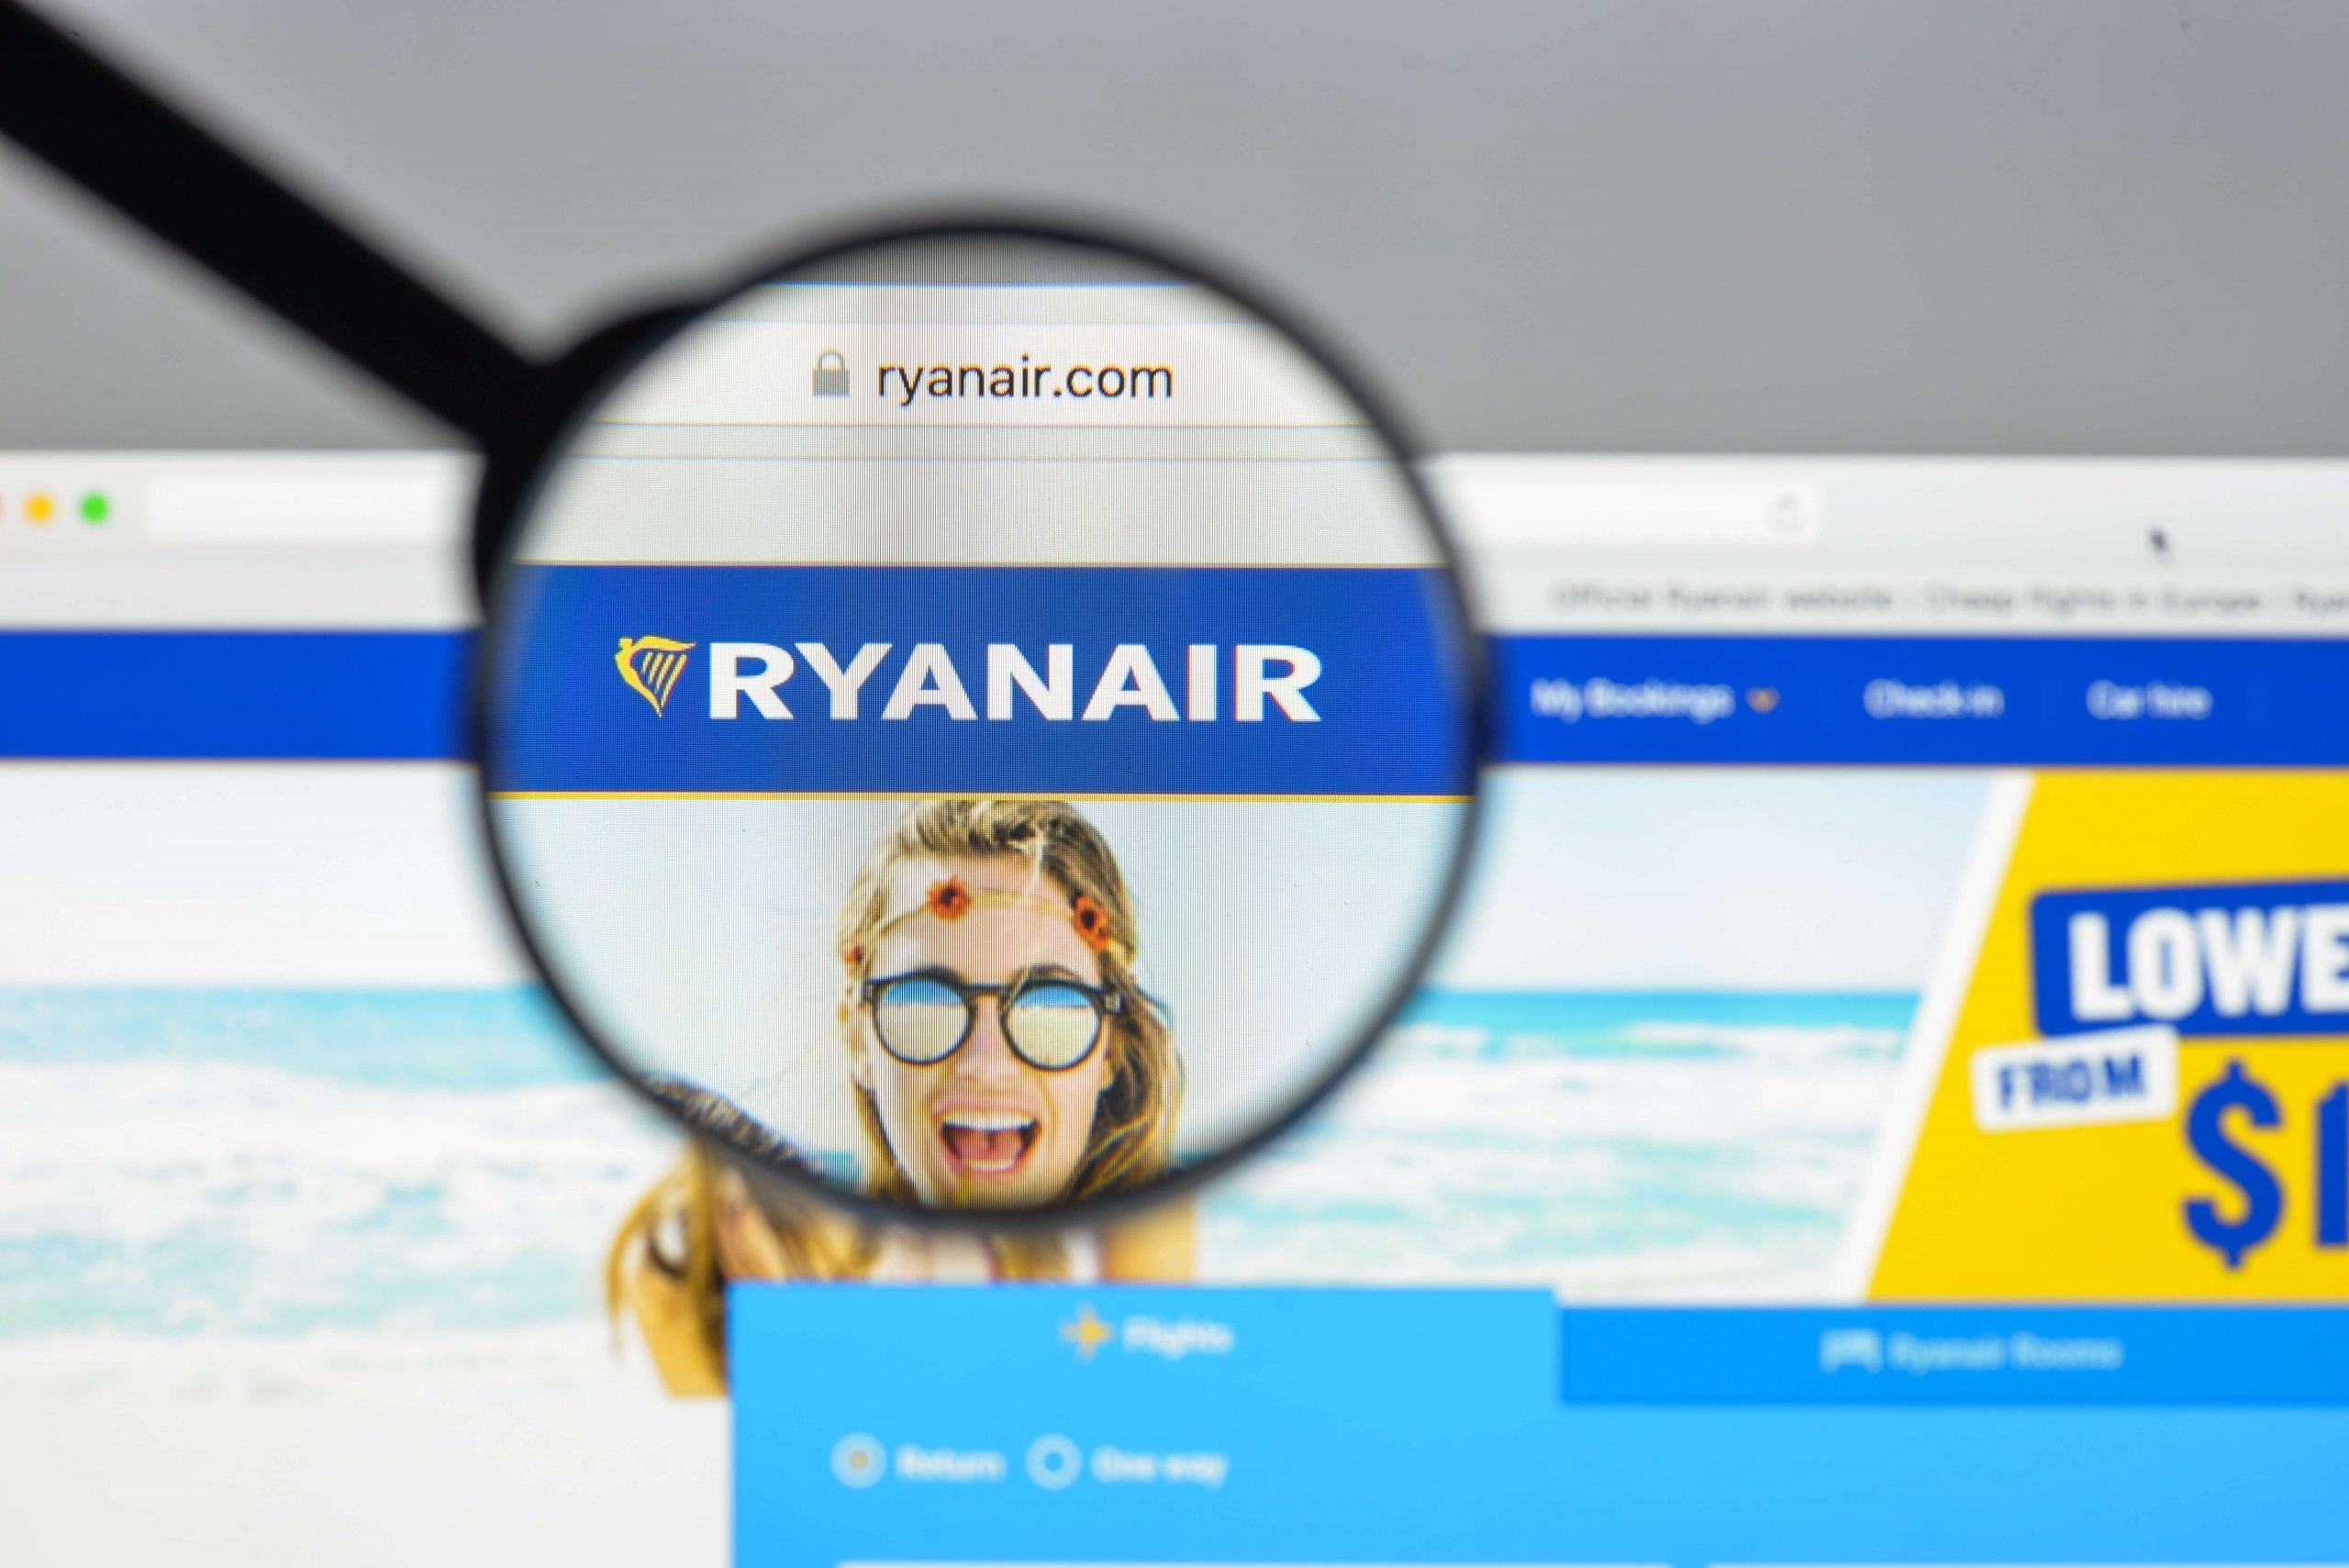 Ryanair UX Research Case Study - How UX and usability research help improve their website